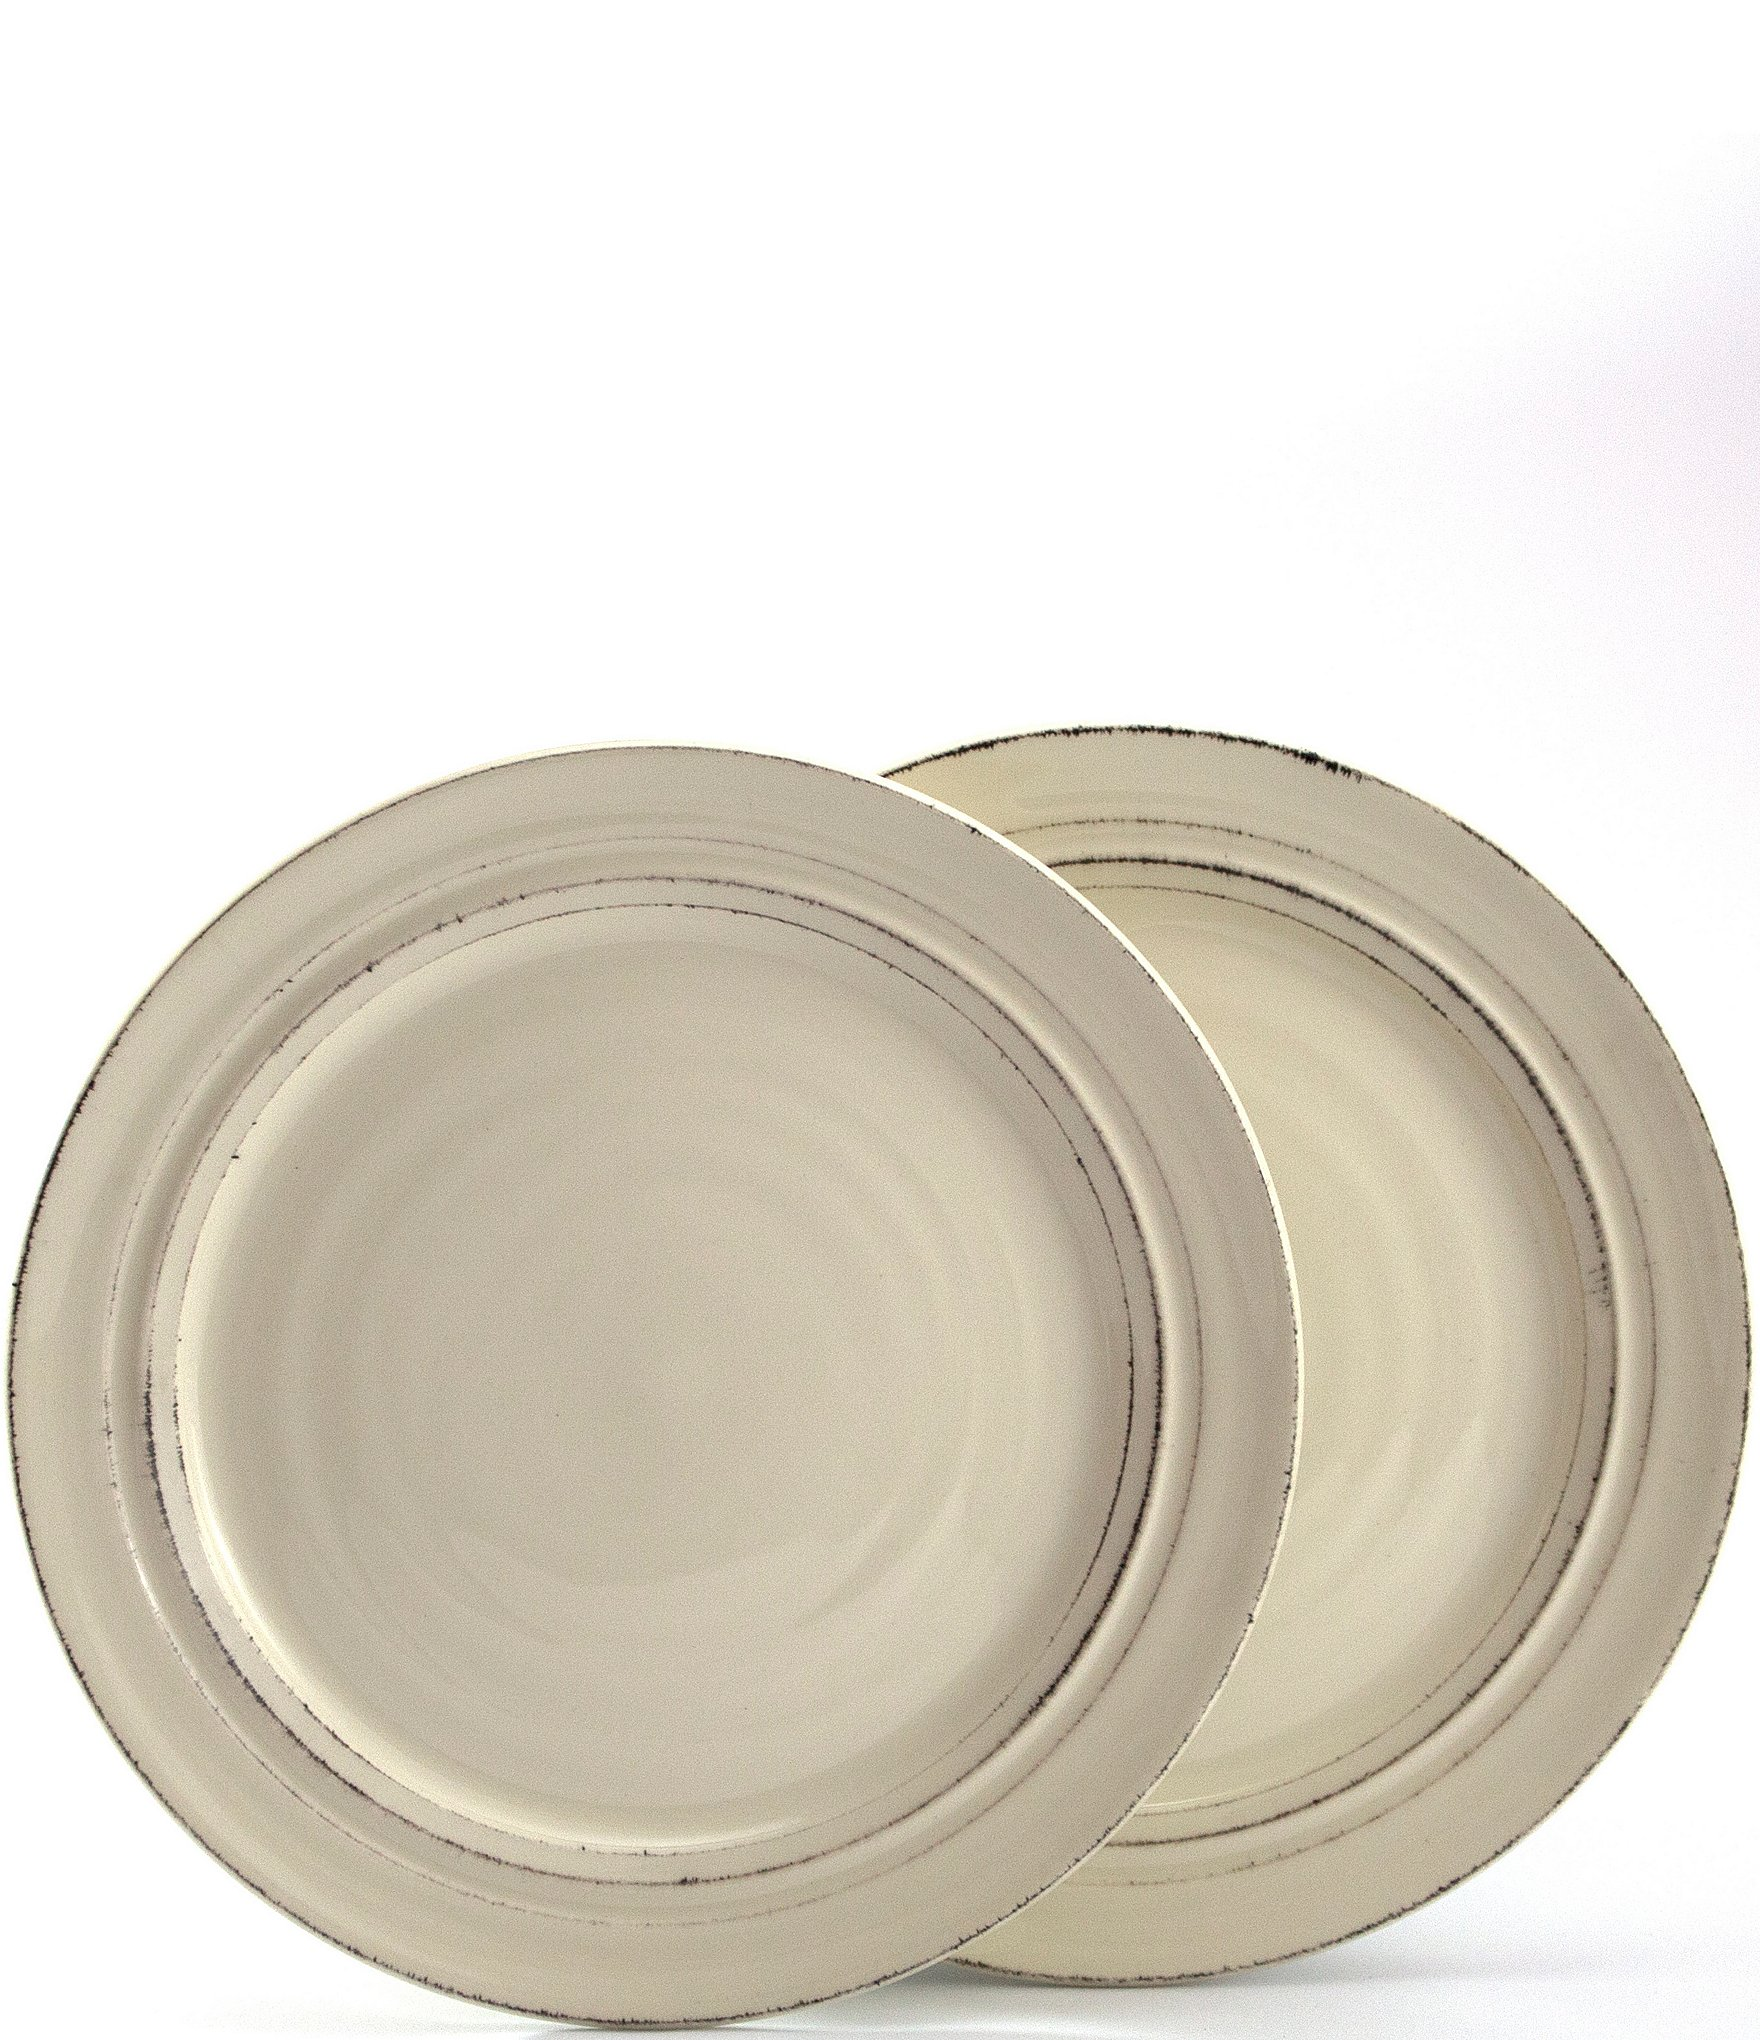 Noble Excellence Casual Everyday Dinnerware Plates  Dishes u0026 Sets | Dillards  sc 1 st  Dillardu0027s & Noble Excellence Casual Everyday Dinnerware: Plates  Dishes u0026 Sets ...